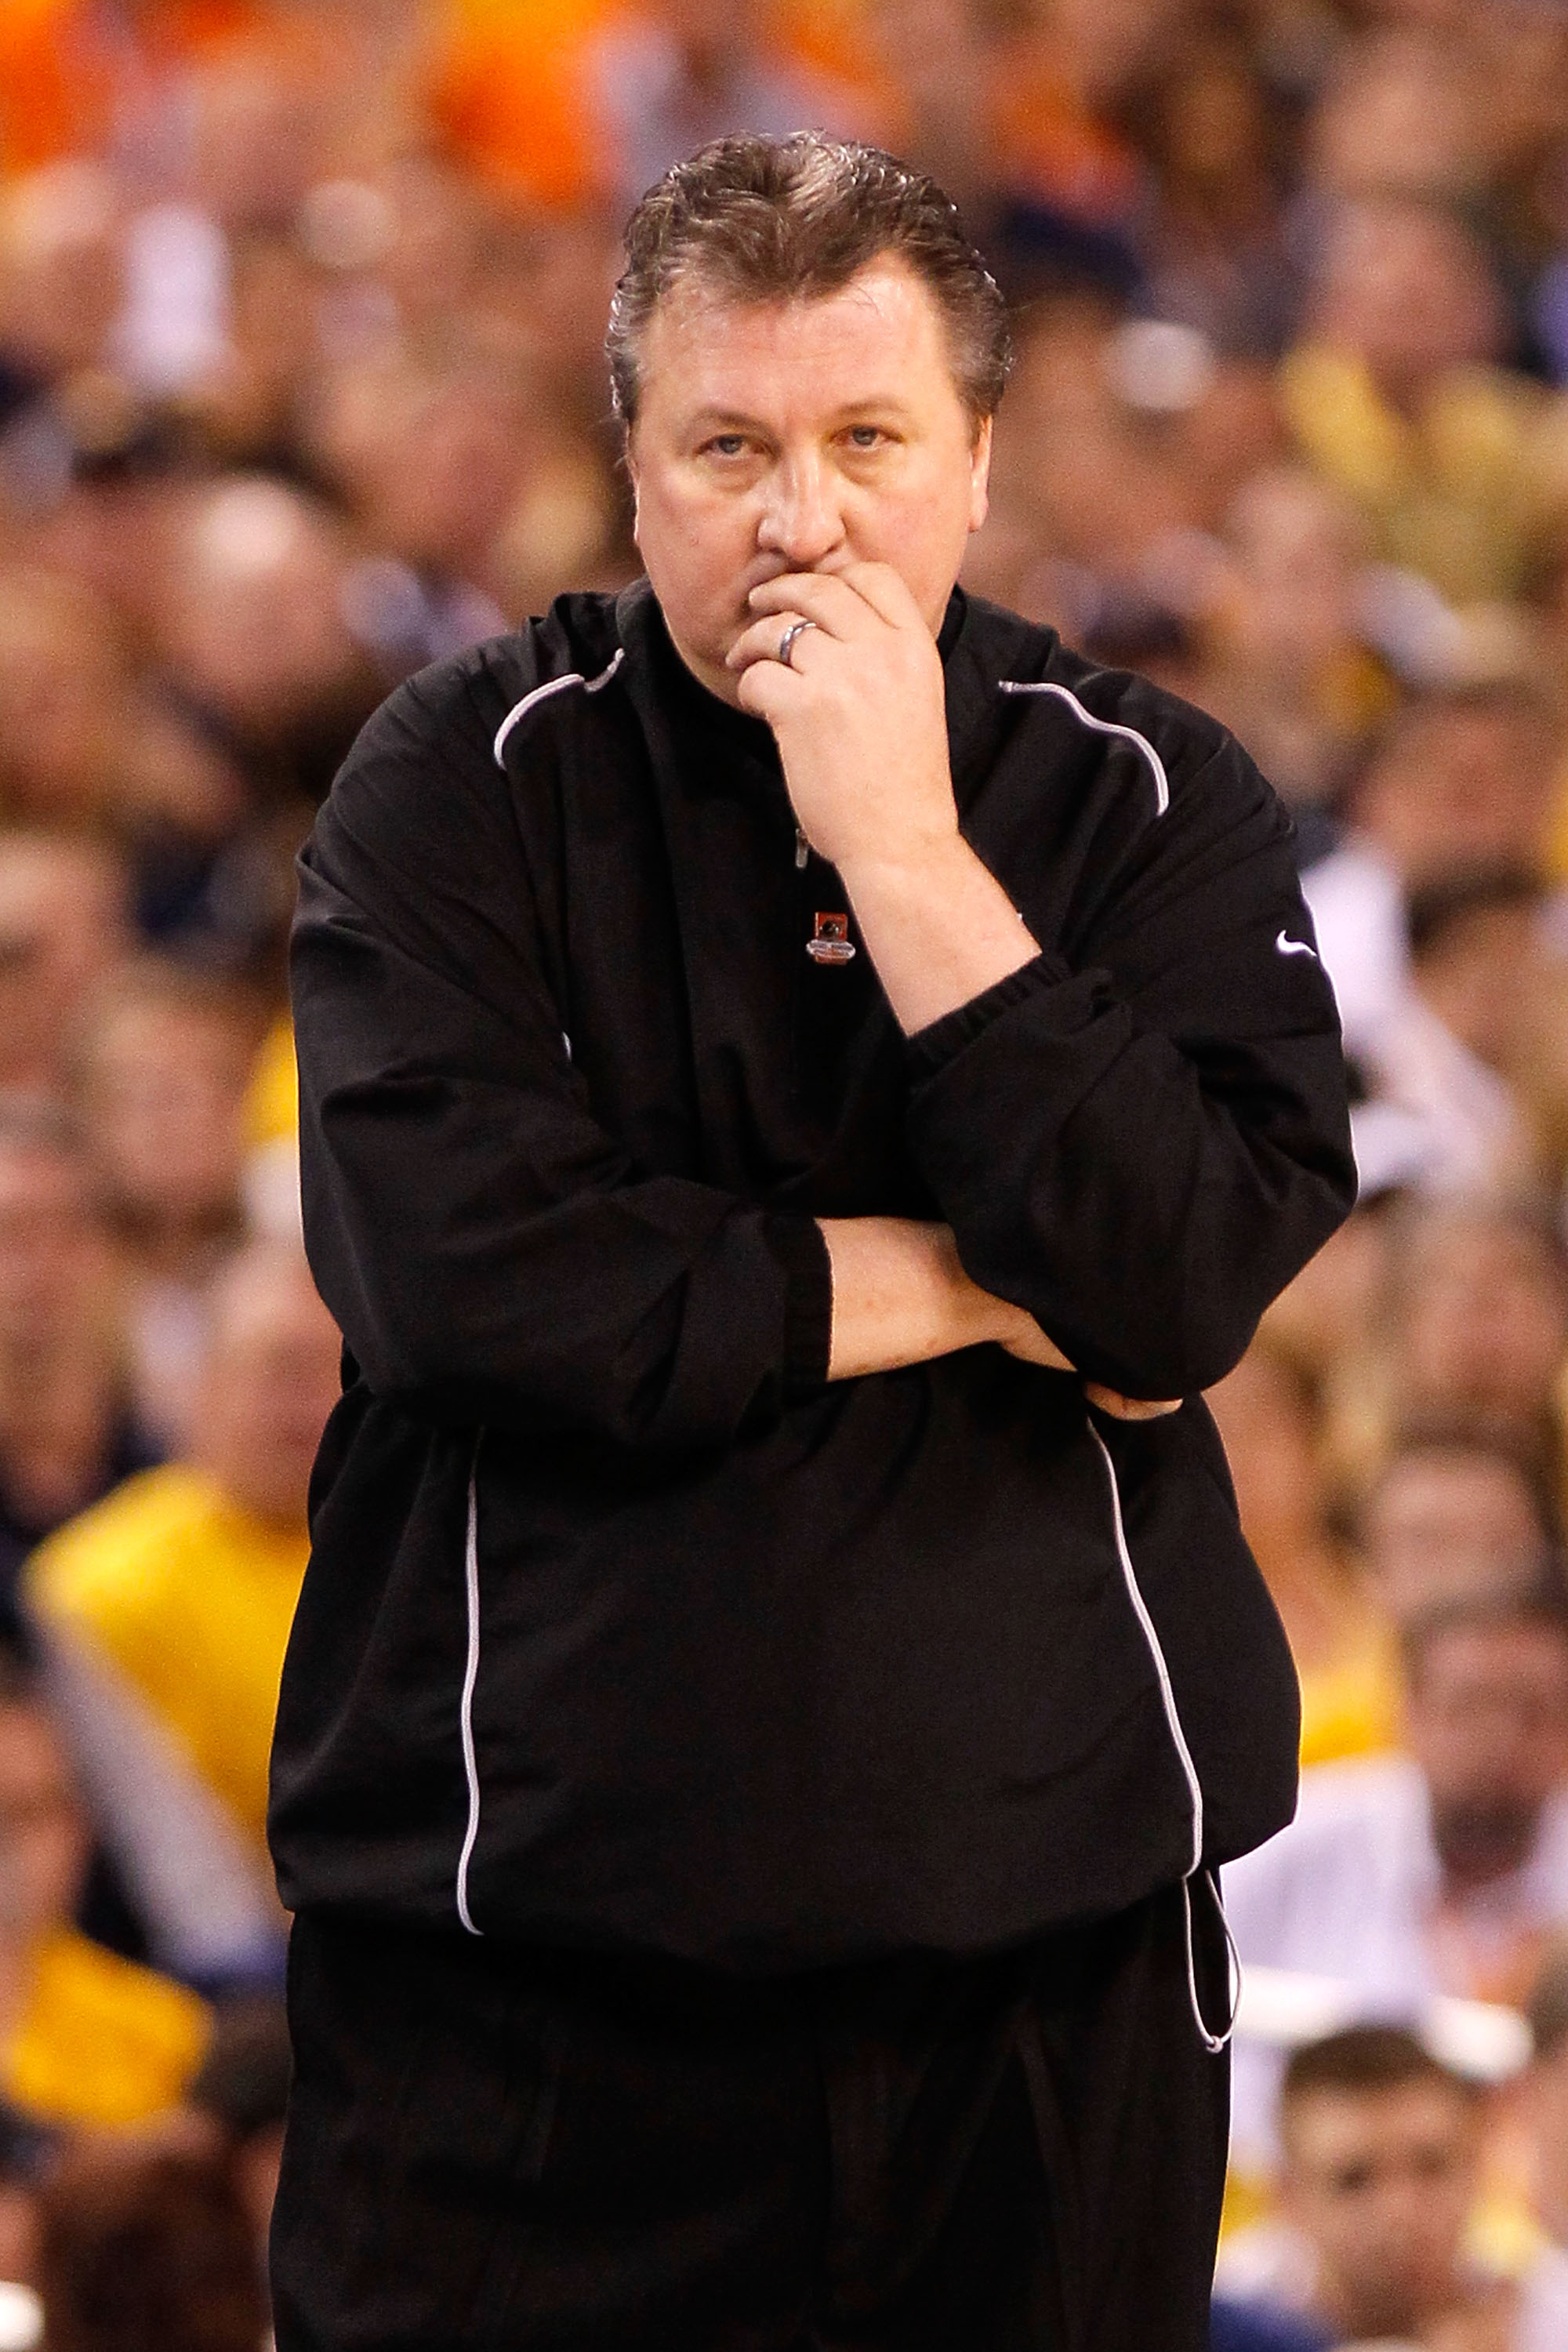 INDIANAPOLIS - APRIL 03:  Head coach Bob Huggins of the West Virginia Mountaineers looks on while taking on the Duke Blue Devils during the National Semifinal game of the 2010 NCAA Division I Men's Basketball Championship at Lucas Oil Stadium on April 3,